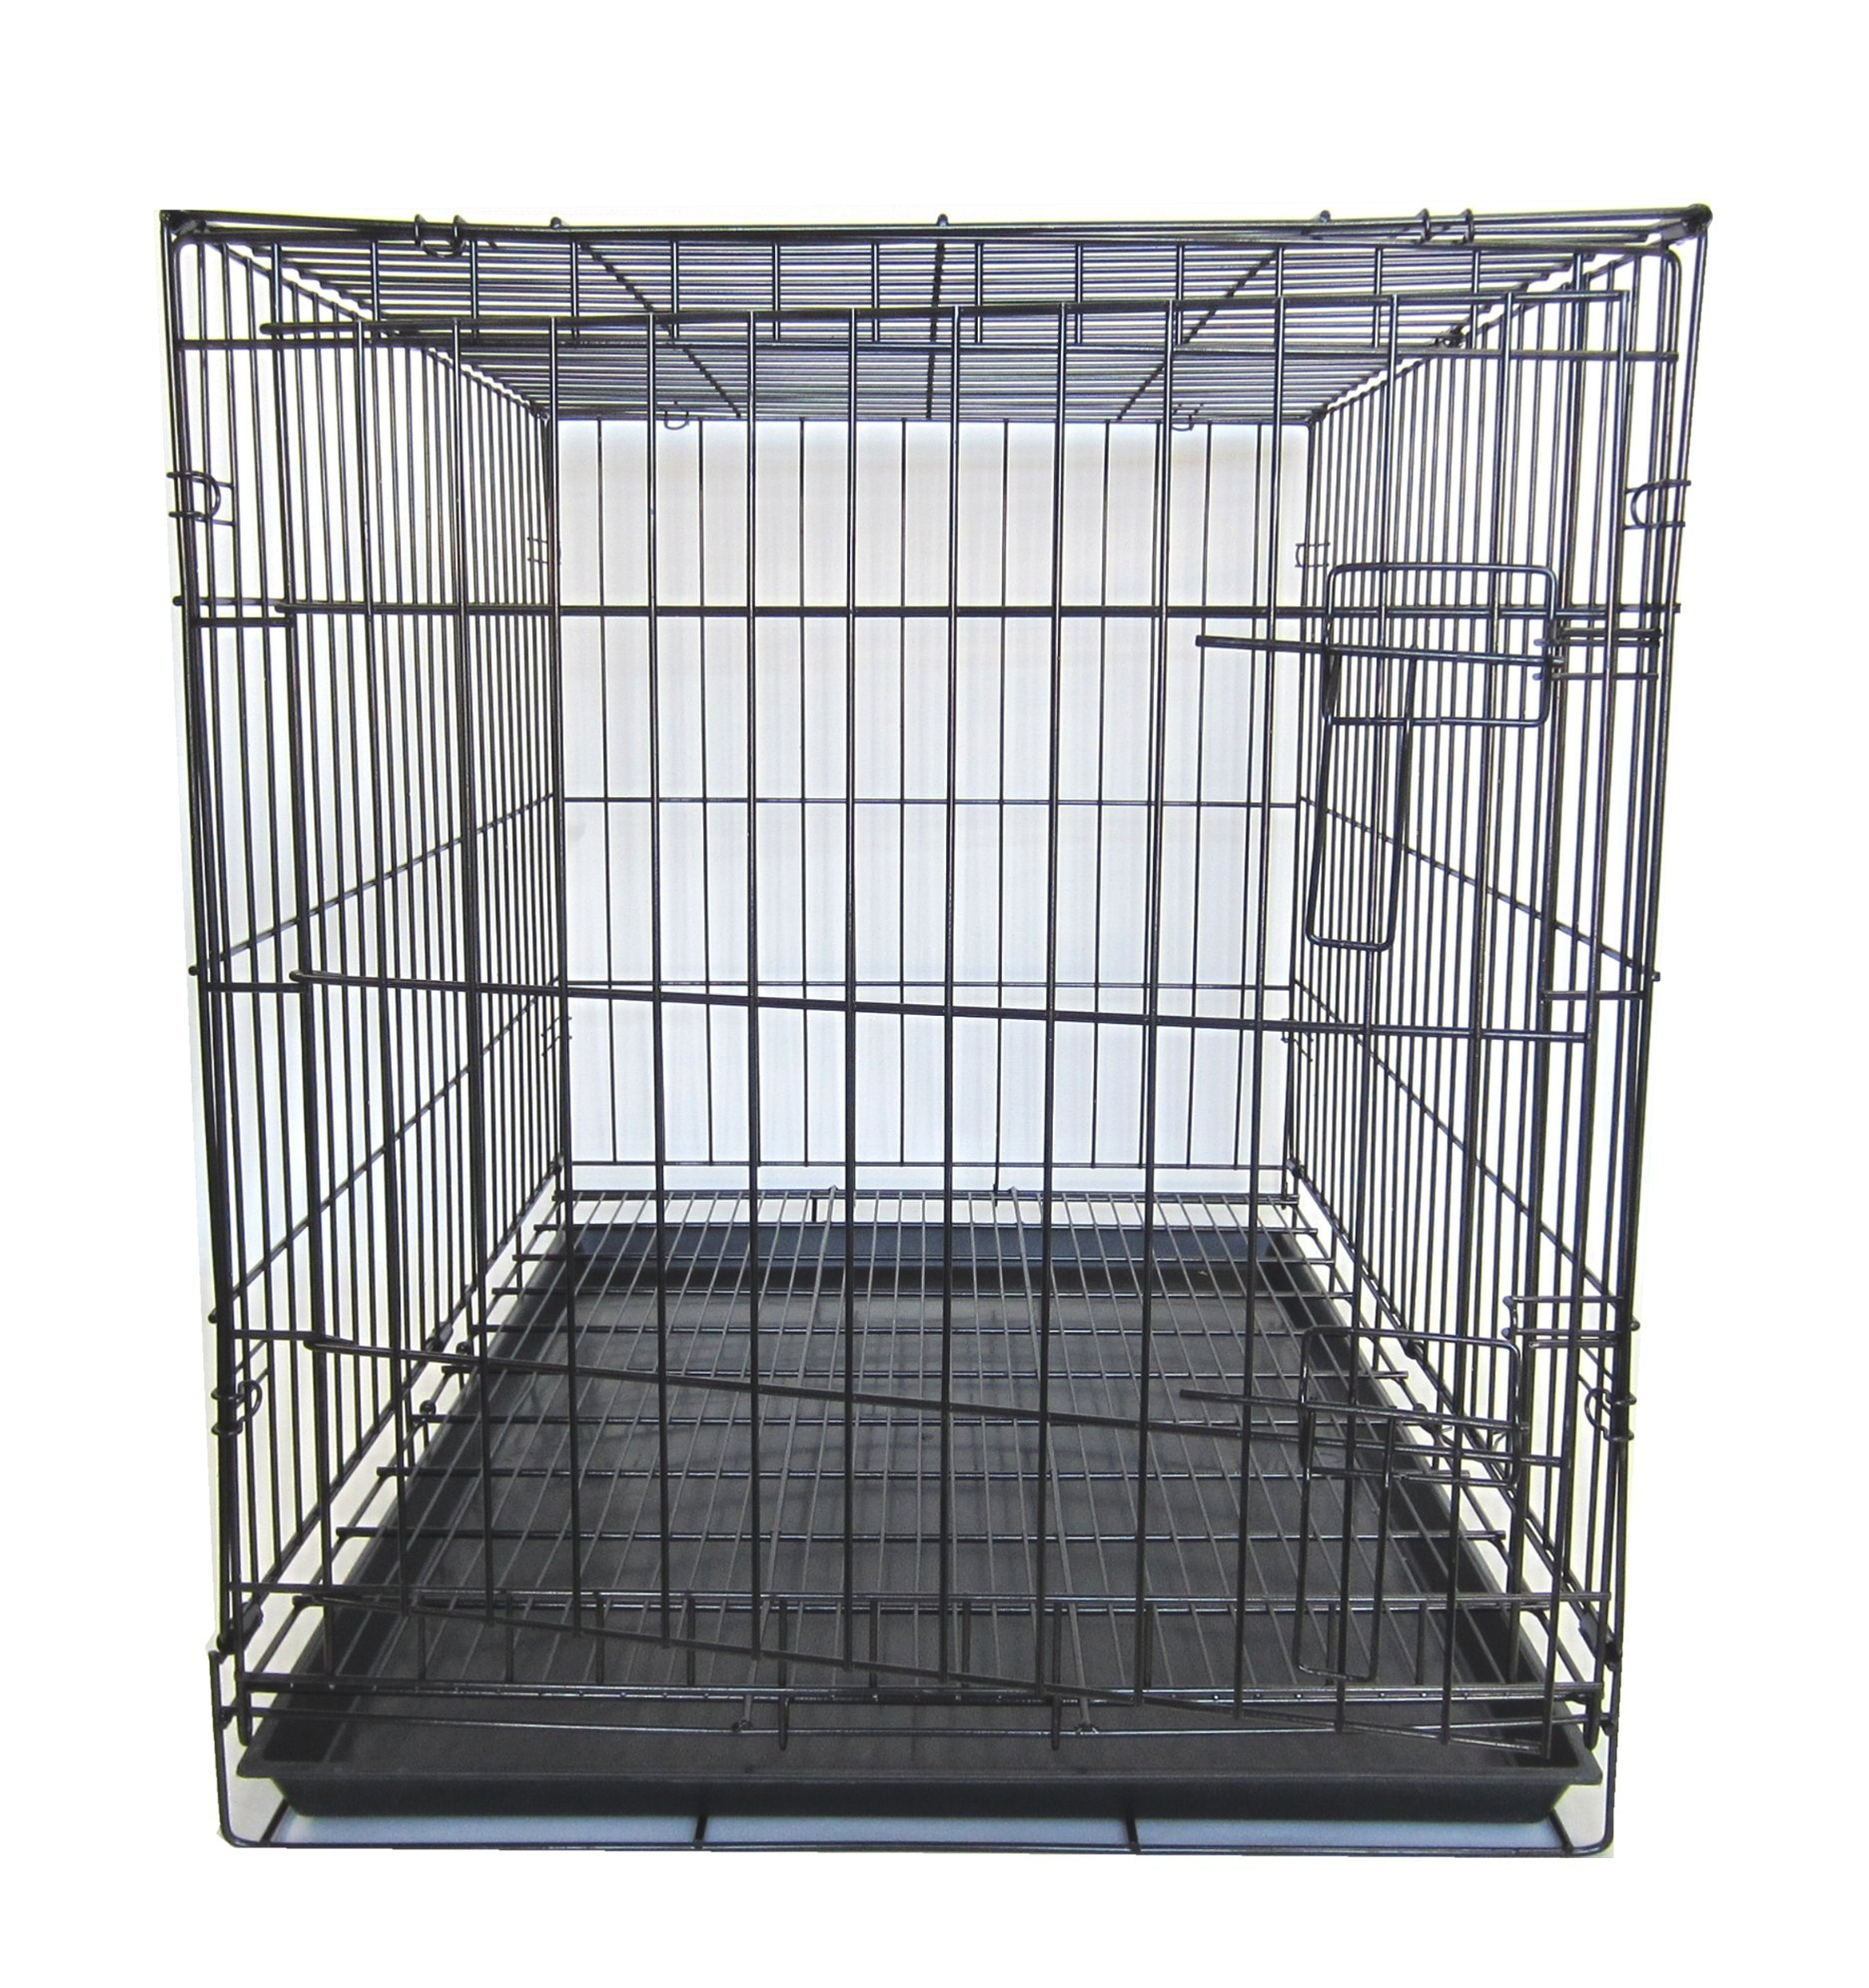 YML 36-Inch Dog Kennel Cage with Wire Bottom Grate and Plastic Tray, Black